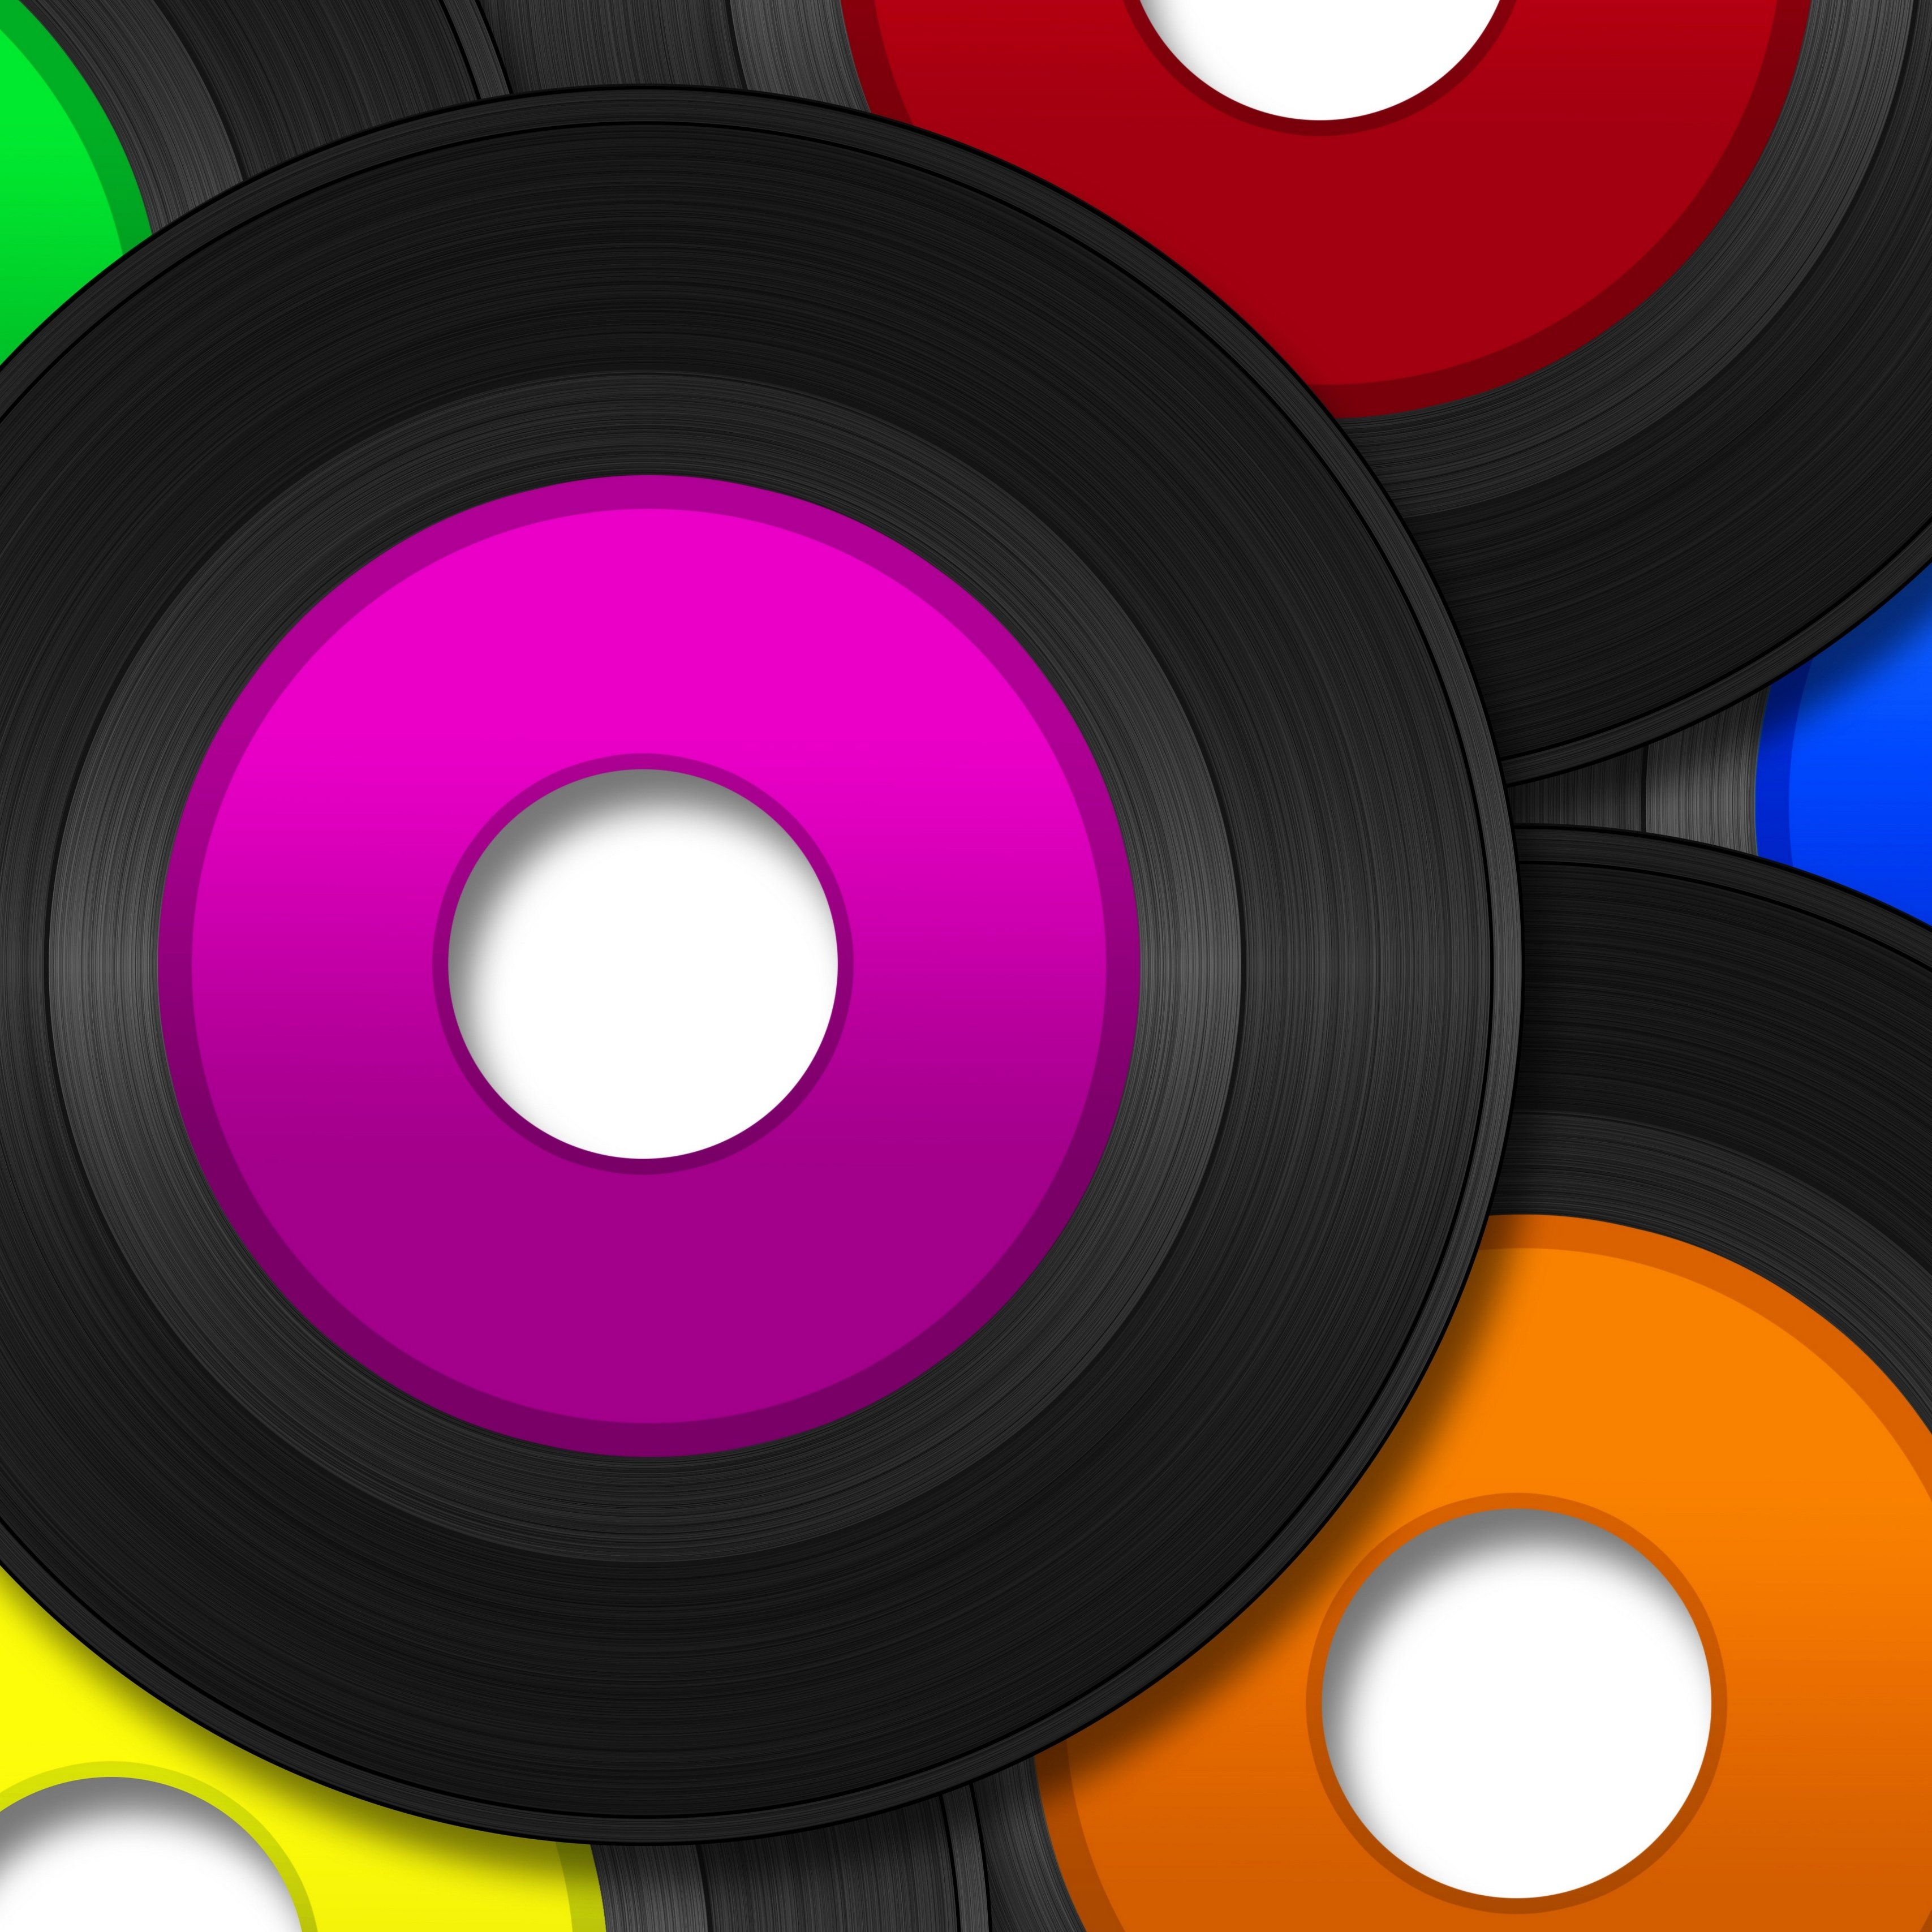 Download wallpaper 3415x3415 vinyl record music vector heap 3415x3415